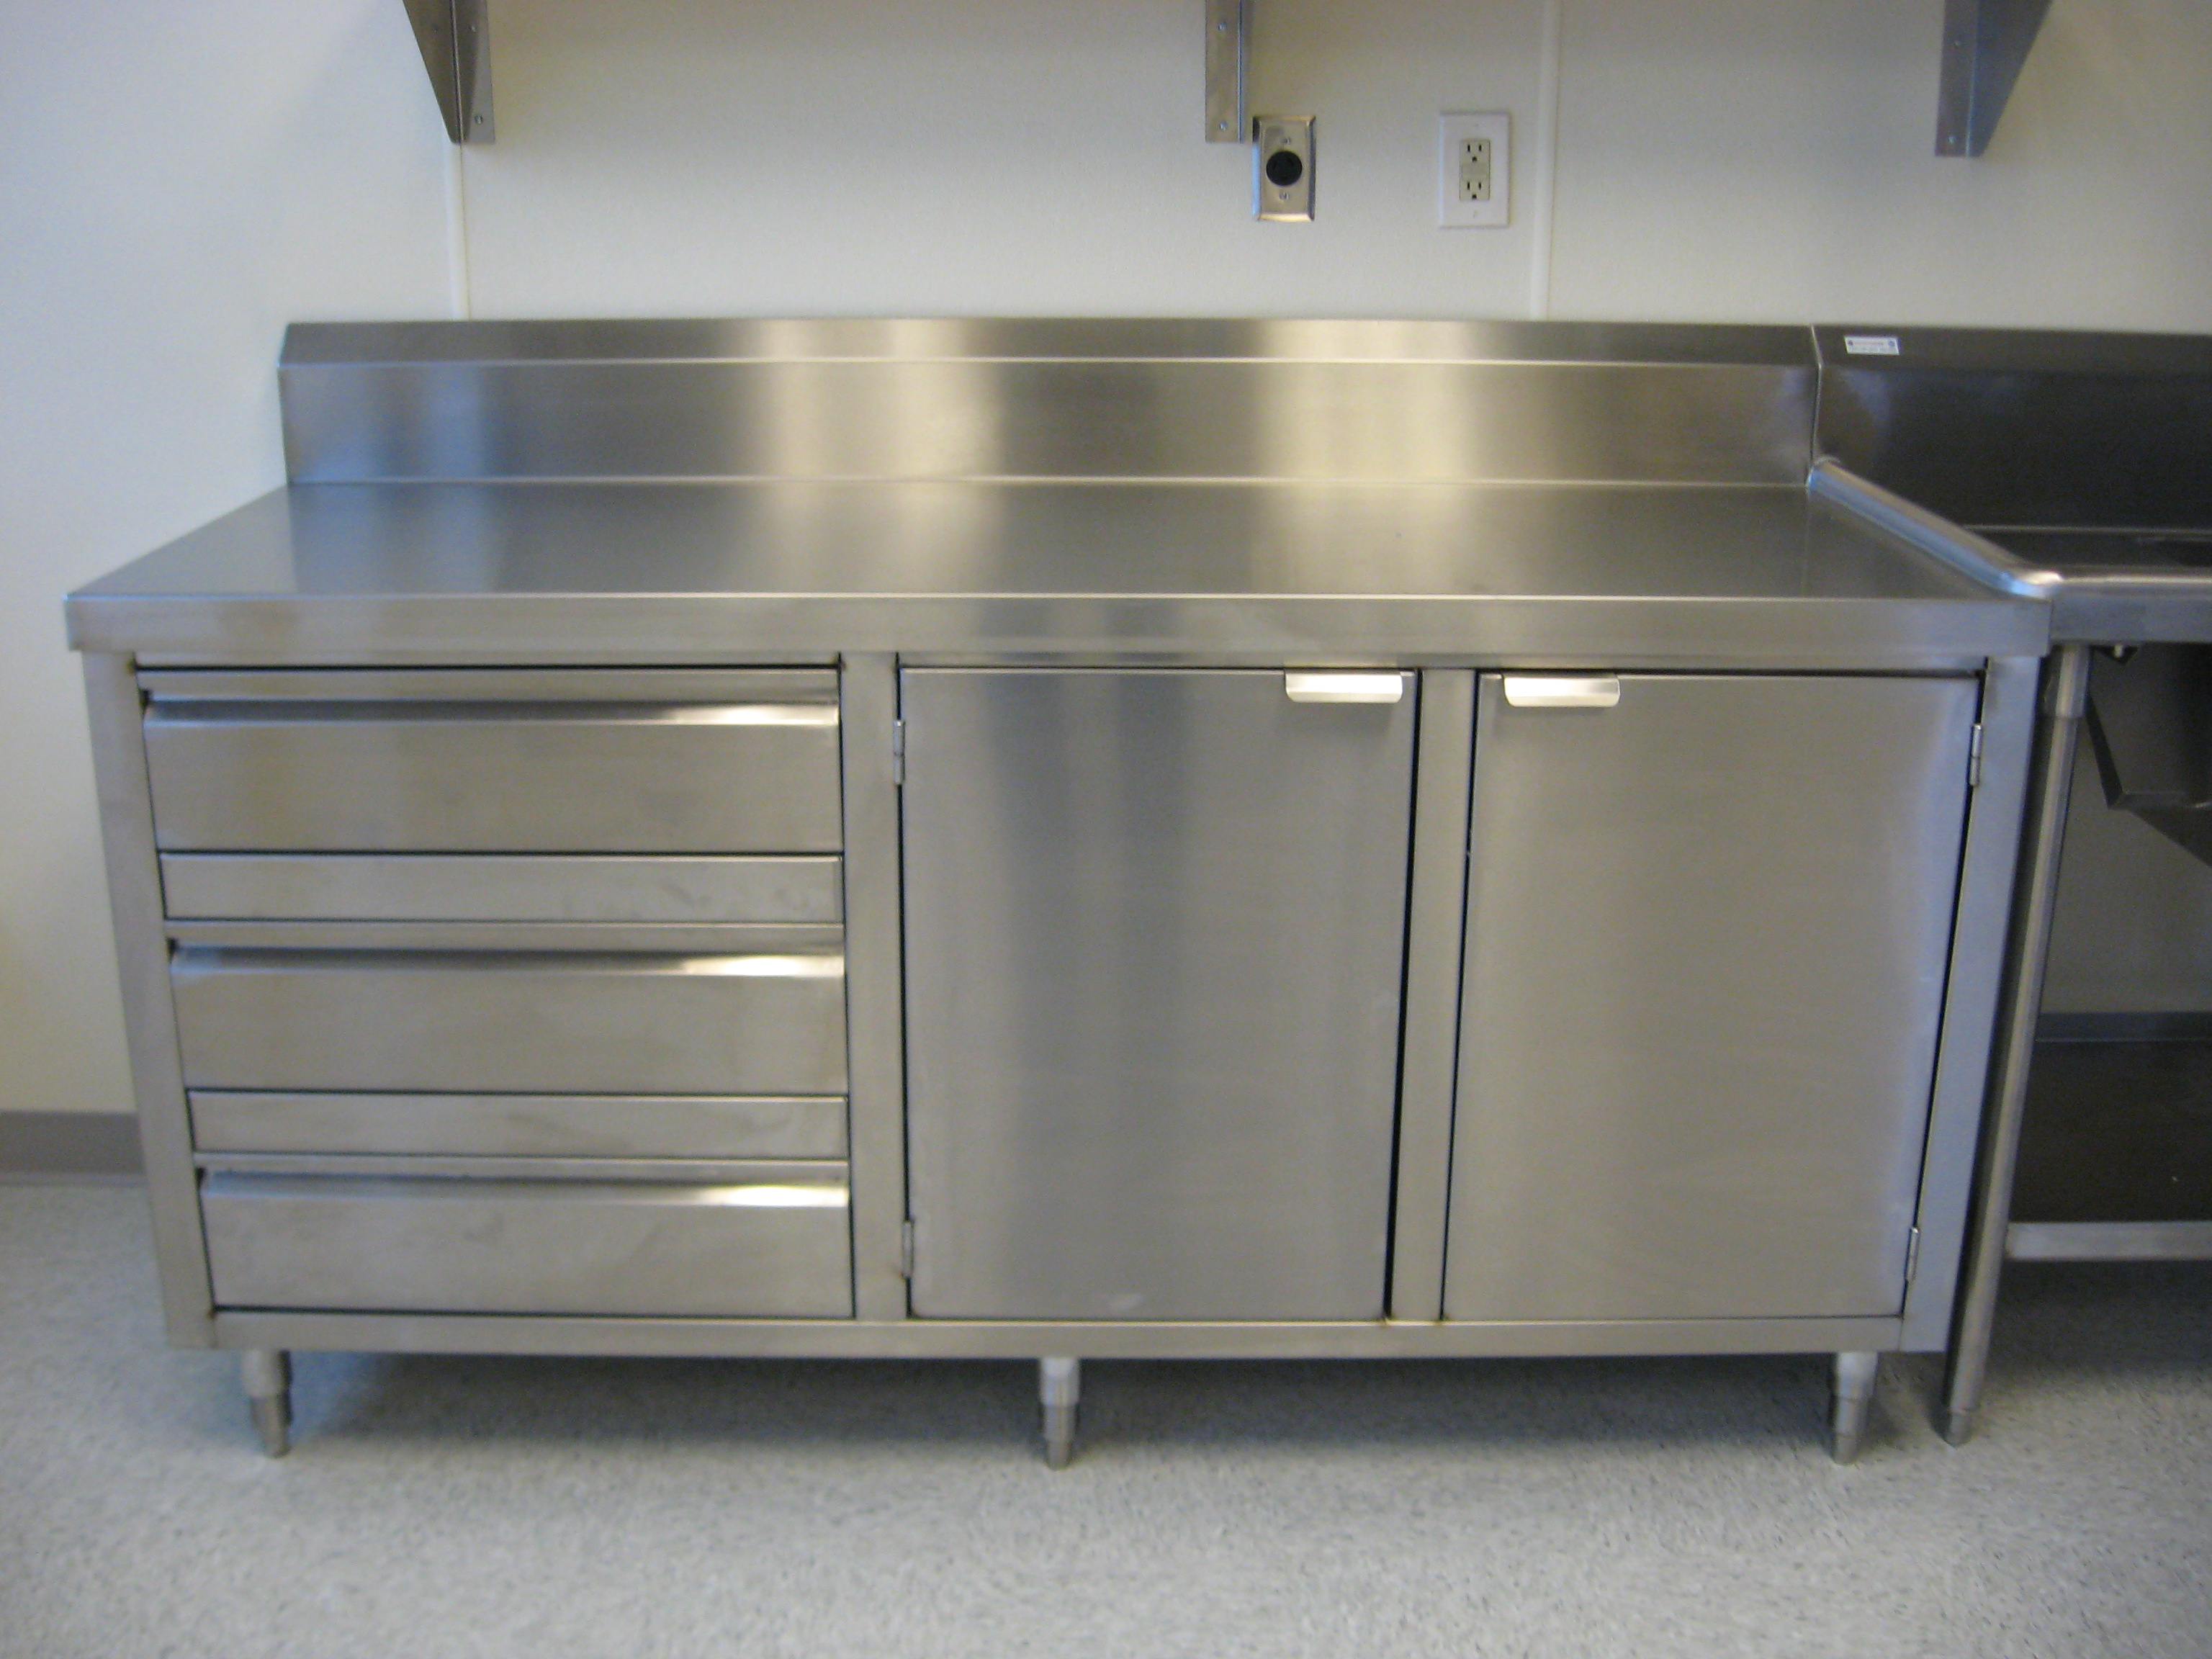 Stainless steel restaurant cabinets mf cabinets Metal kitchen cabinets